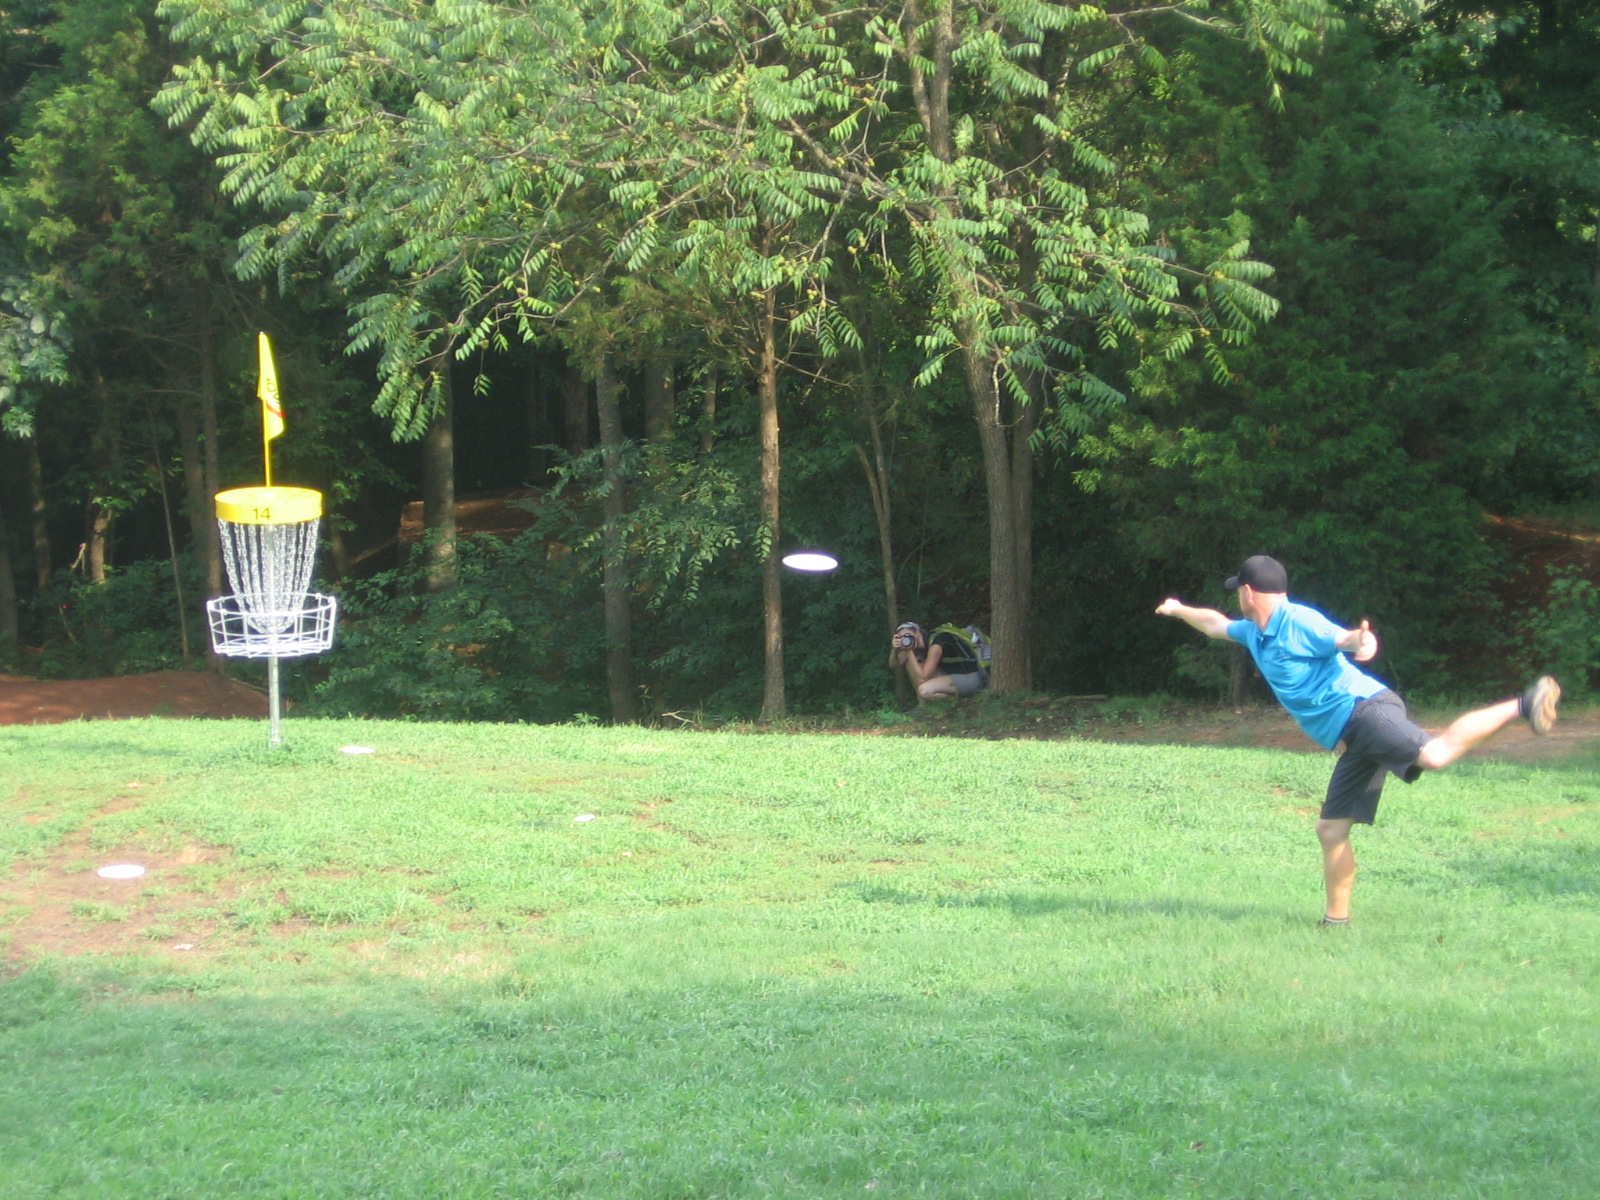 Disc golf dating site